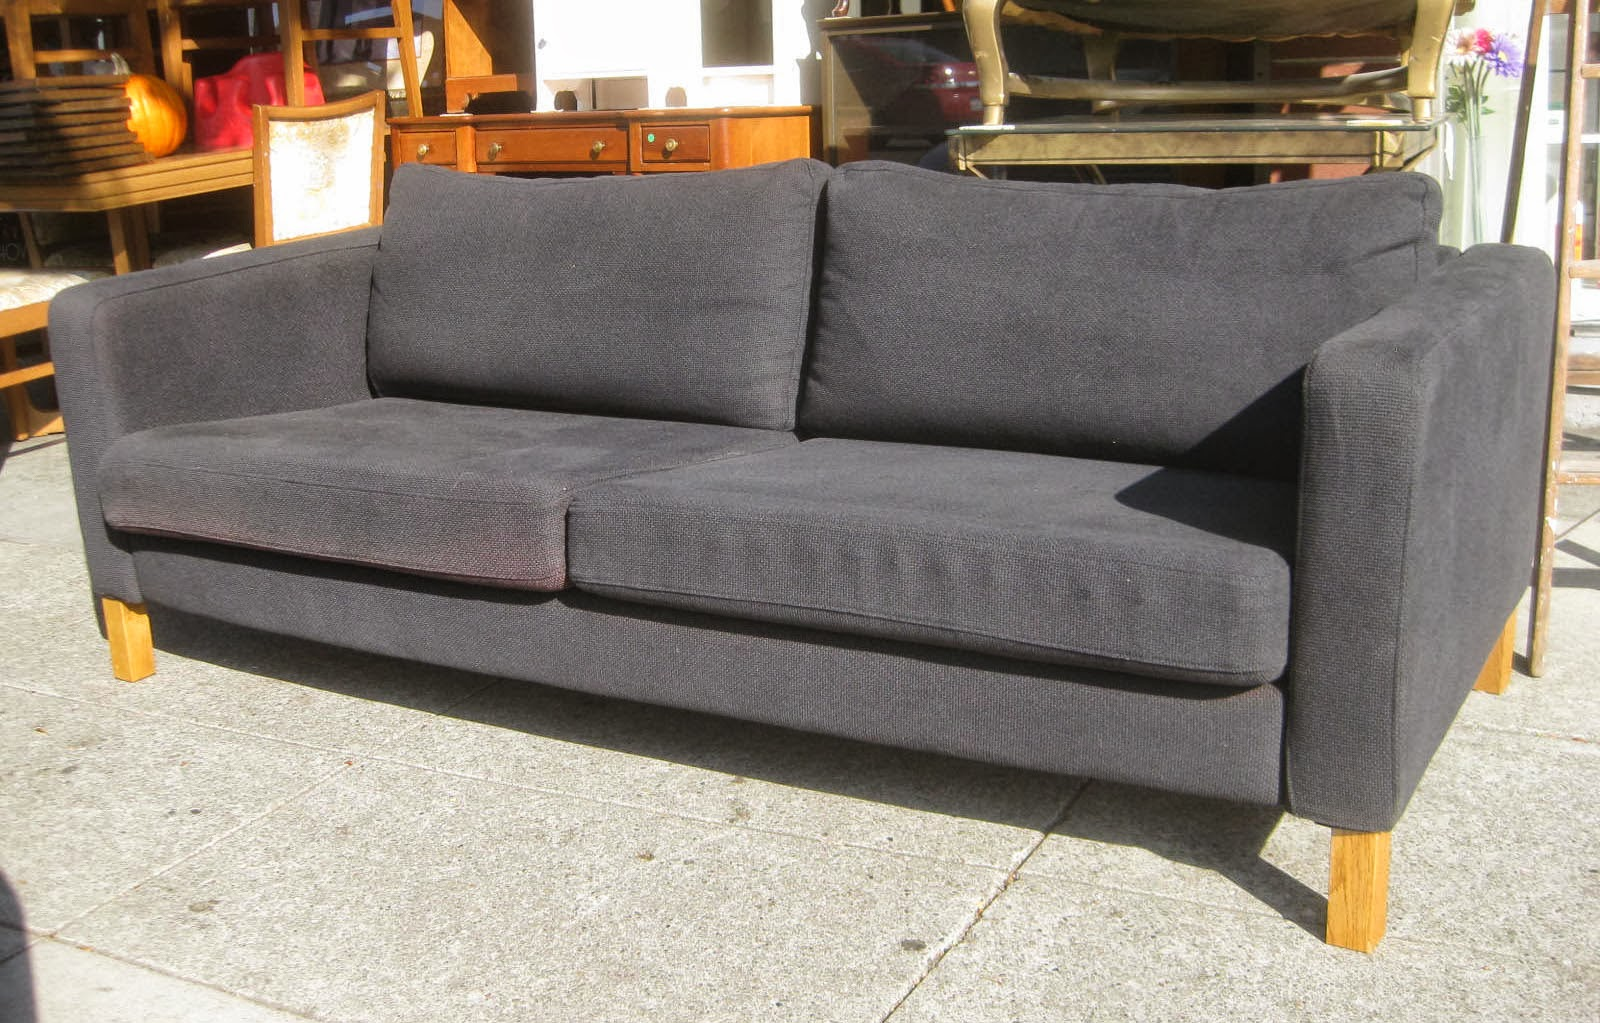 Black Fabric Sofa Chair Living Room Furniture Corner Uhuru And Collectibles Sold 75